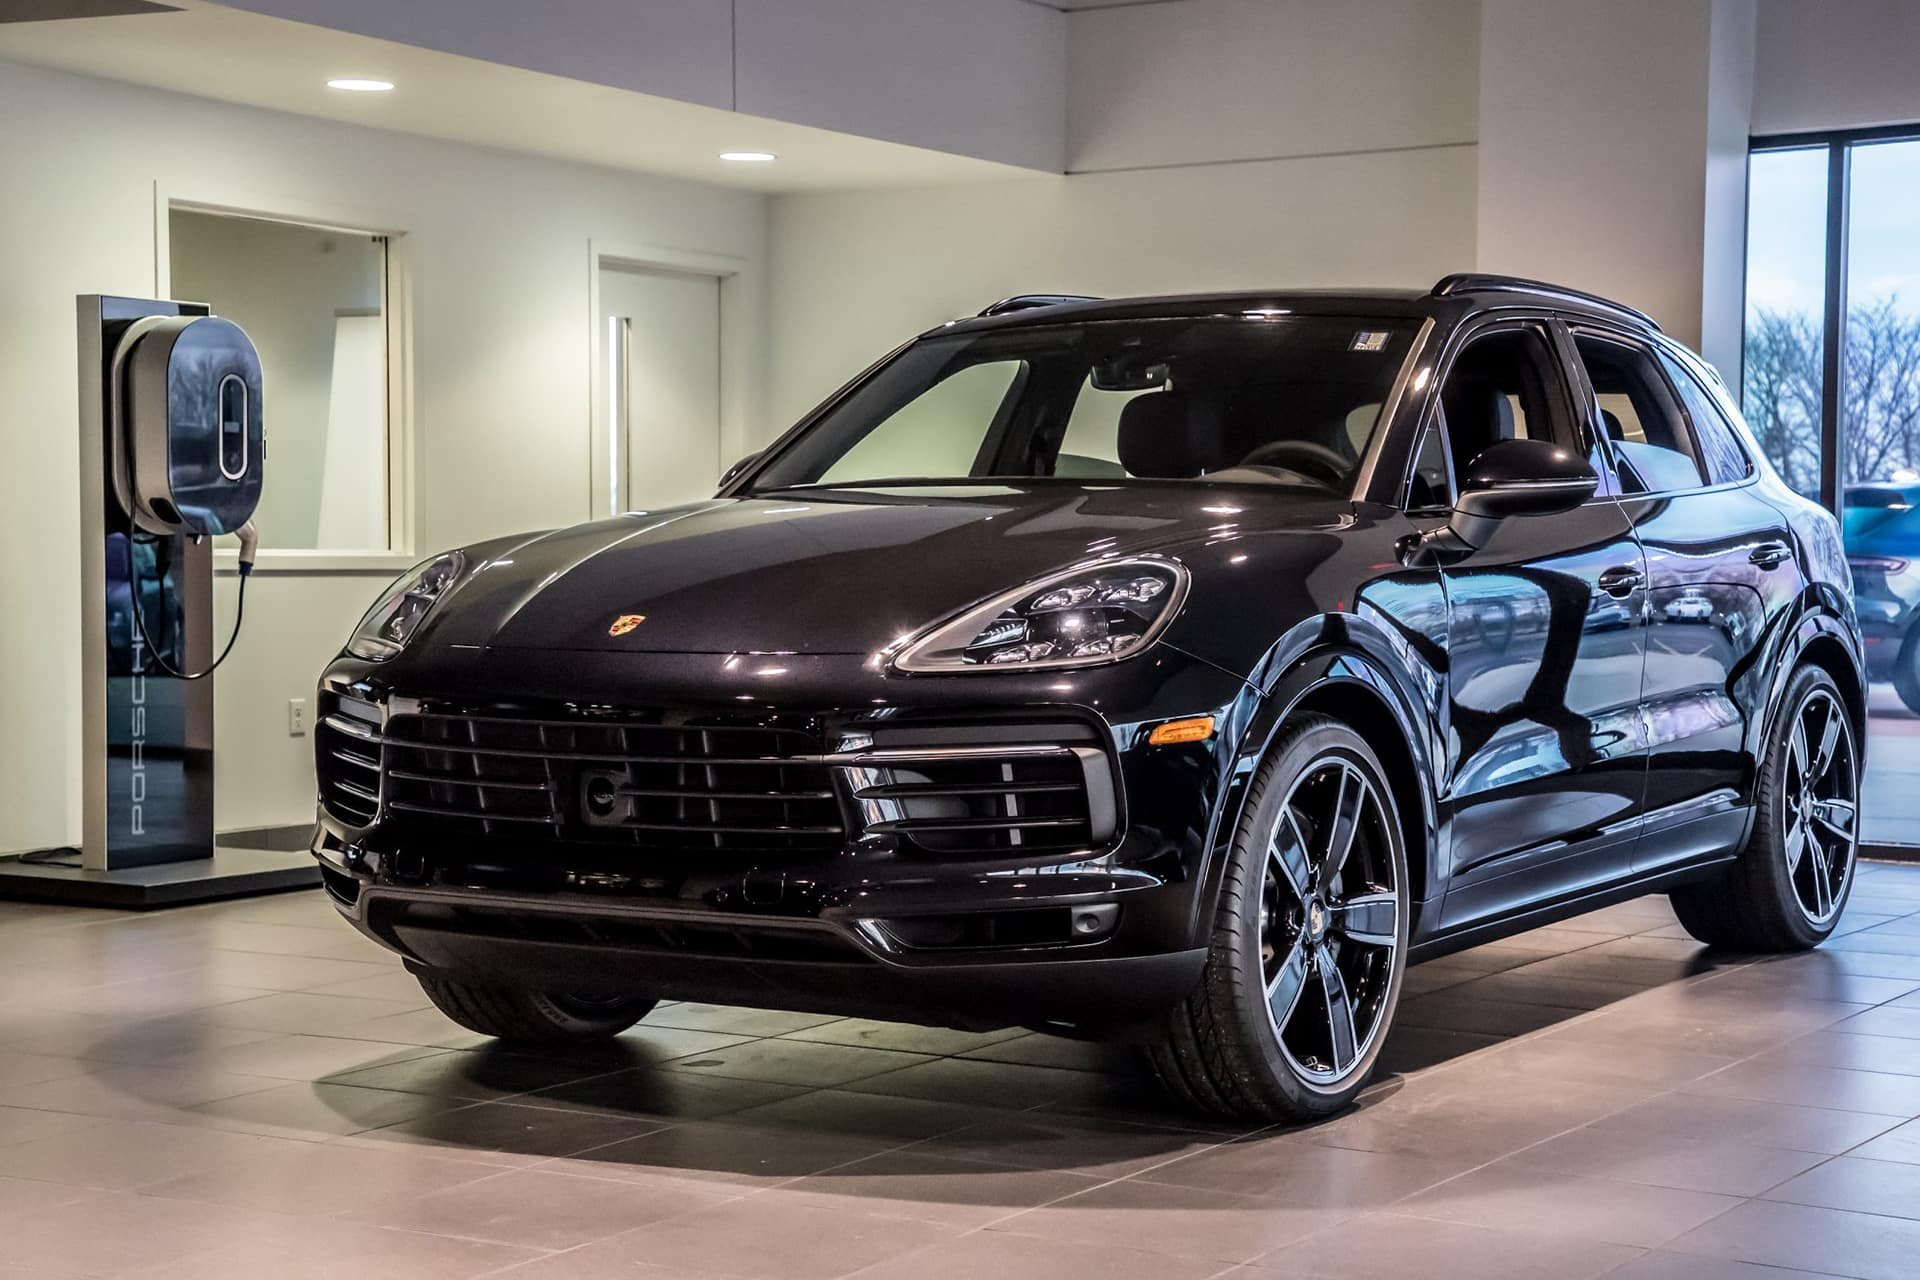 New 2019 Porsche-Cayenne E-Hybrid Cayenne E-Hybrid for sale $79,900 at M and V Leasing in Brooklyn NY 11223 1